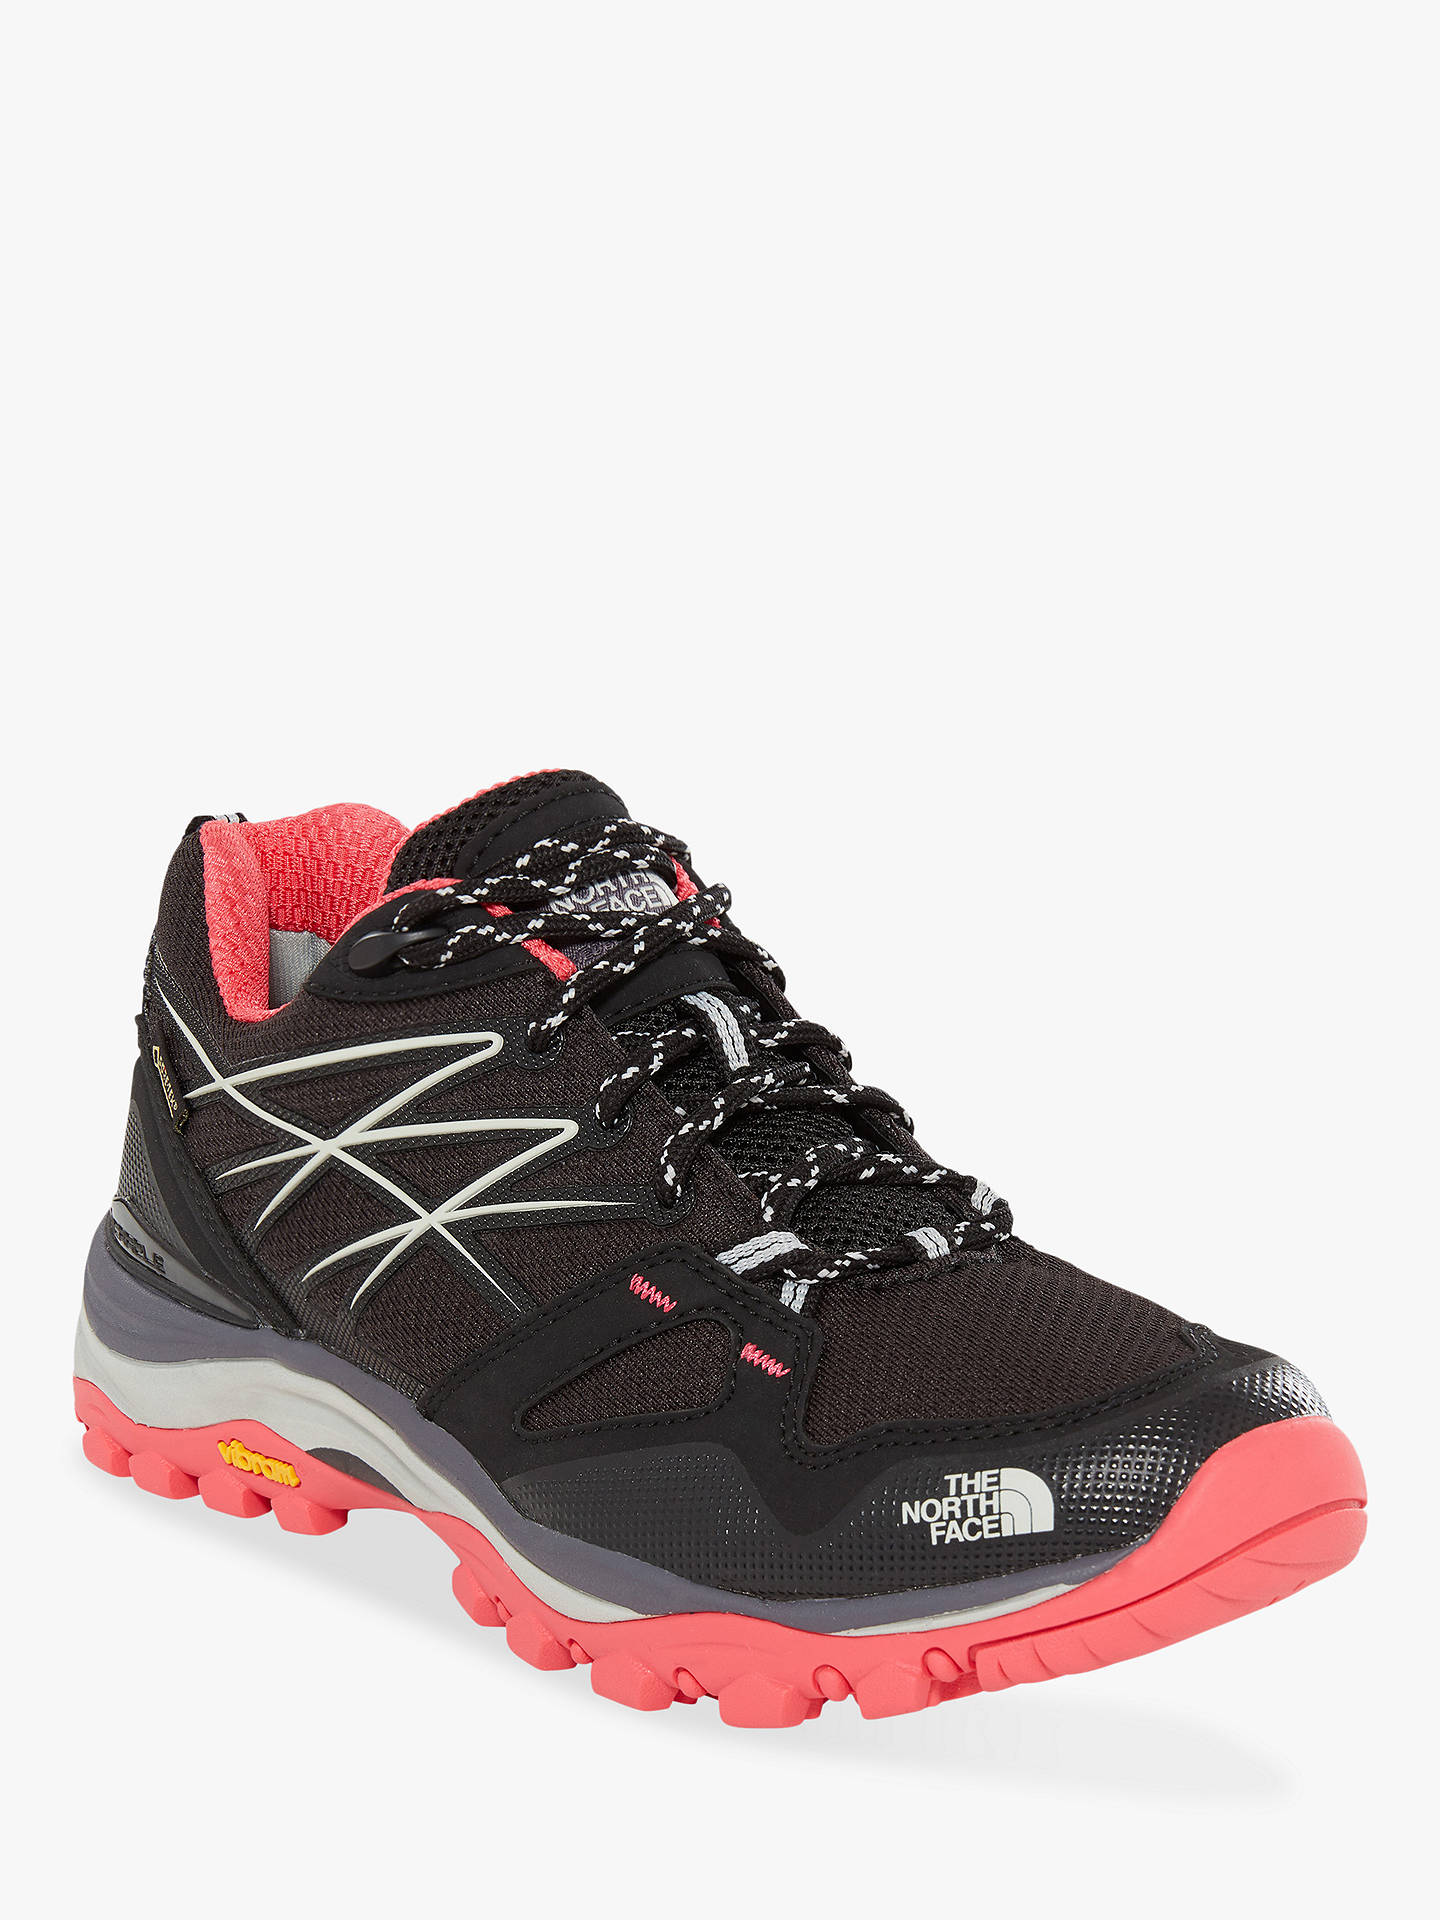 e8f873b6b The North Face Hedgehog Fastpack GTX Waterproof Women's Hiking Shoes ...